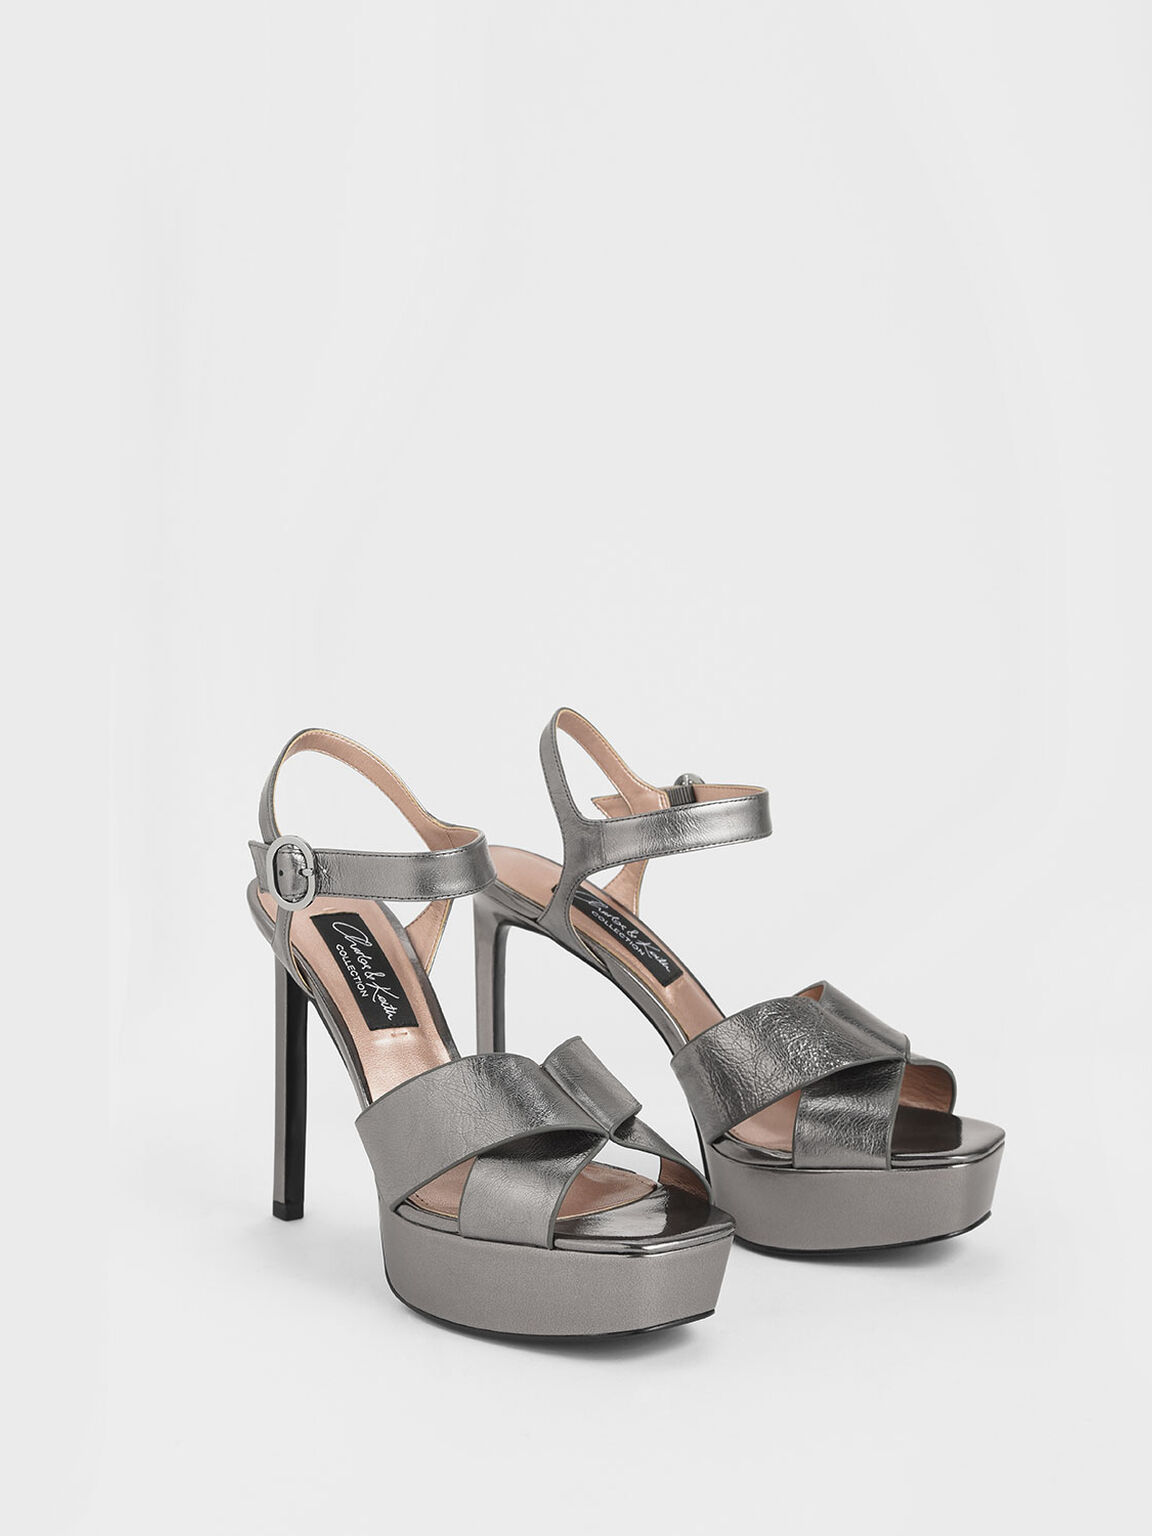 Wrinkled-Effect Leather Platform Stiletto Heels, Pewter, hi-res